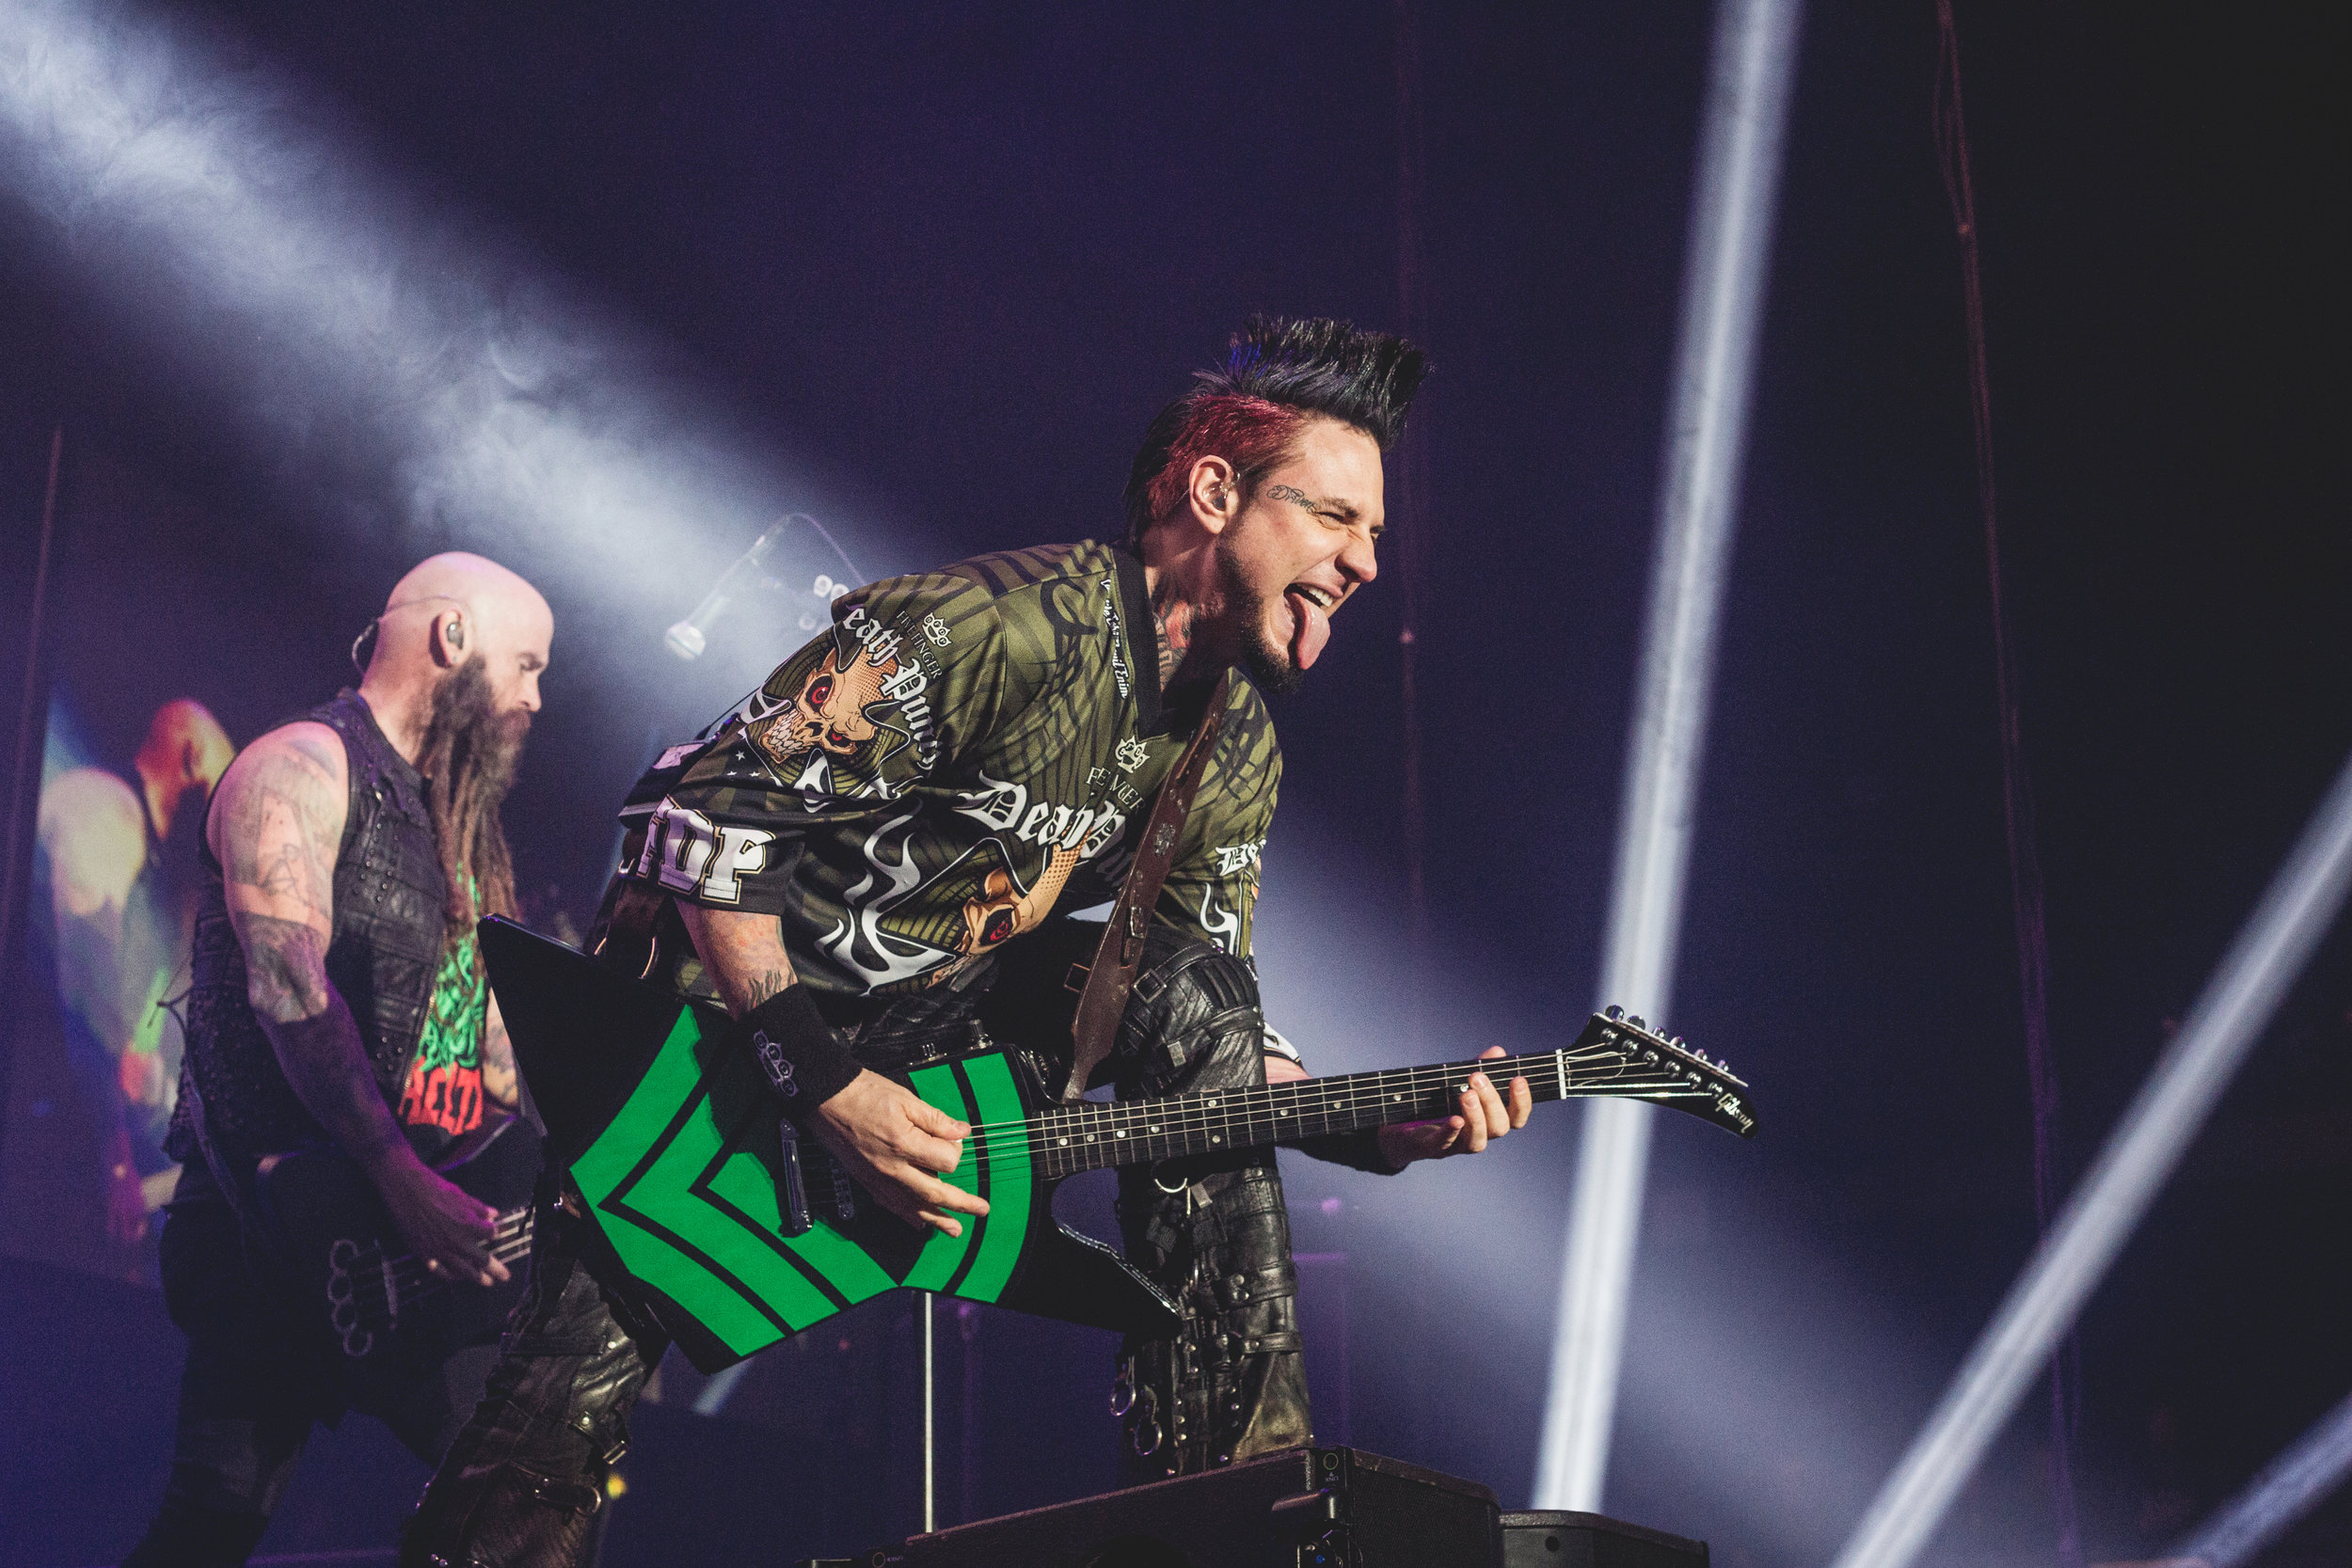 Five Finger Death Punch at Wembley Arena 2016